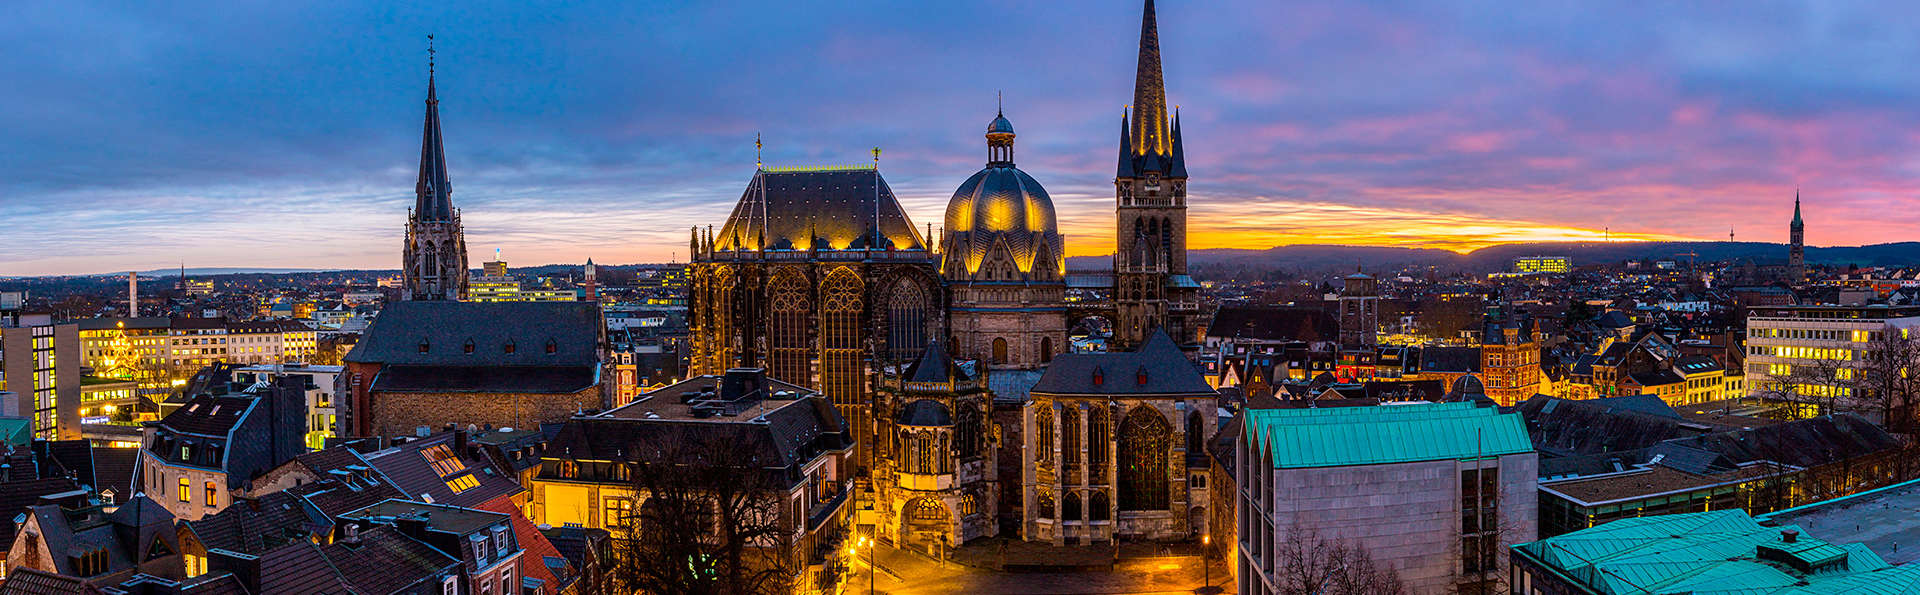 Mercure Hotel Aachen am Dom (Aken / Aix-la-Chapelle) - EDIT_destination.jpg